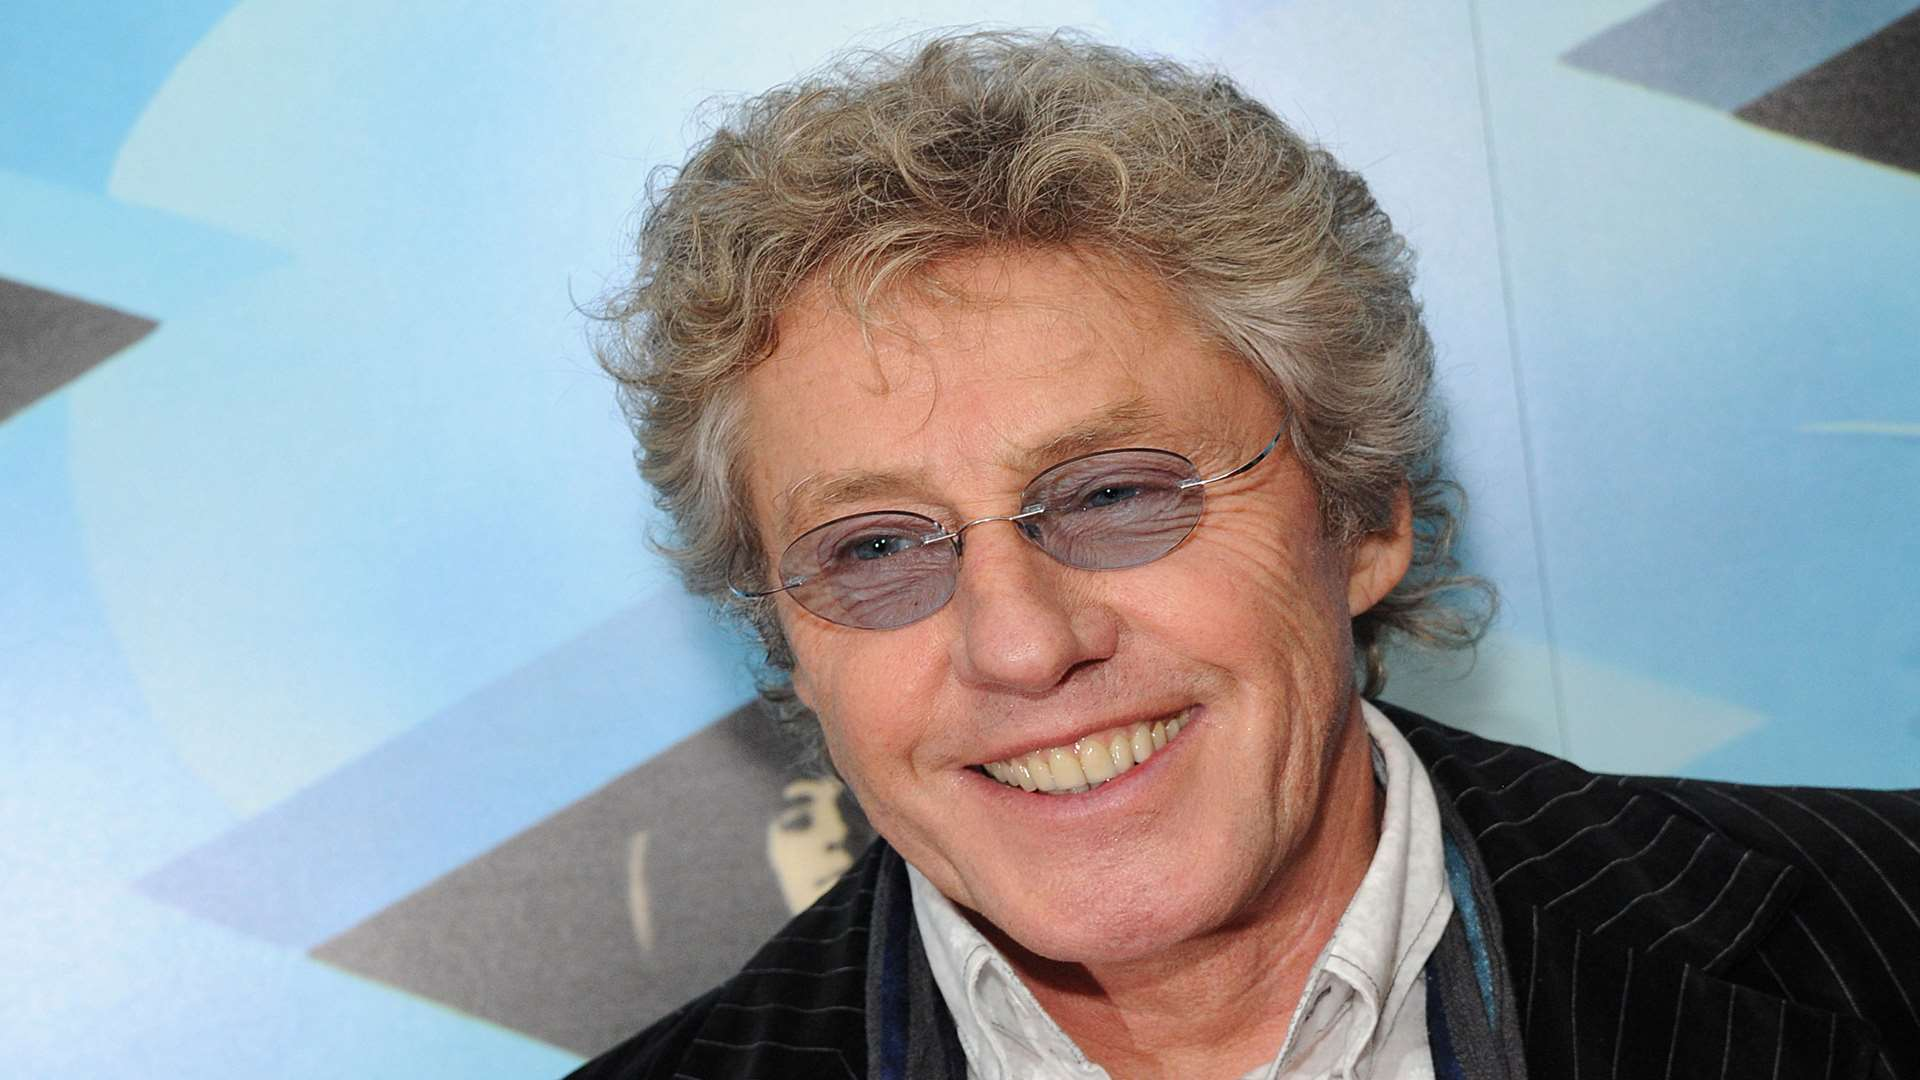 Singer Roger Daltrey is behind the plan